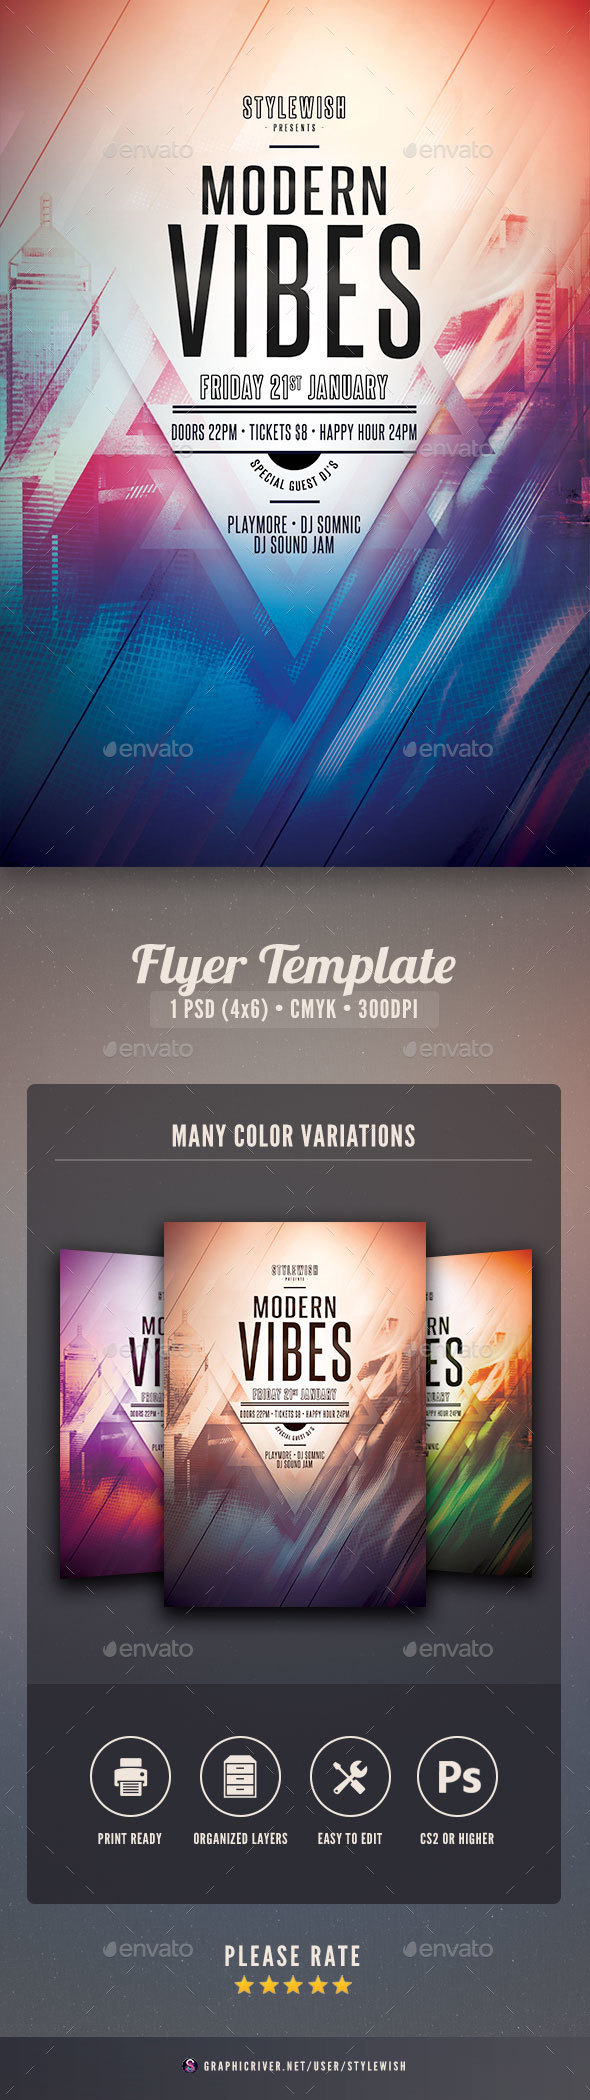 Modern Vibes Flyer - Clubs & Parties Events